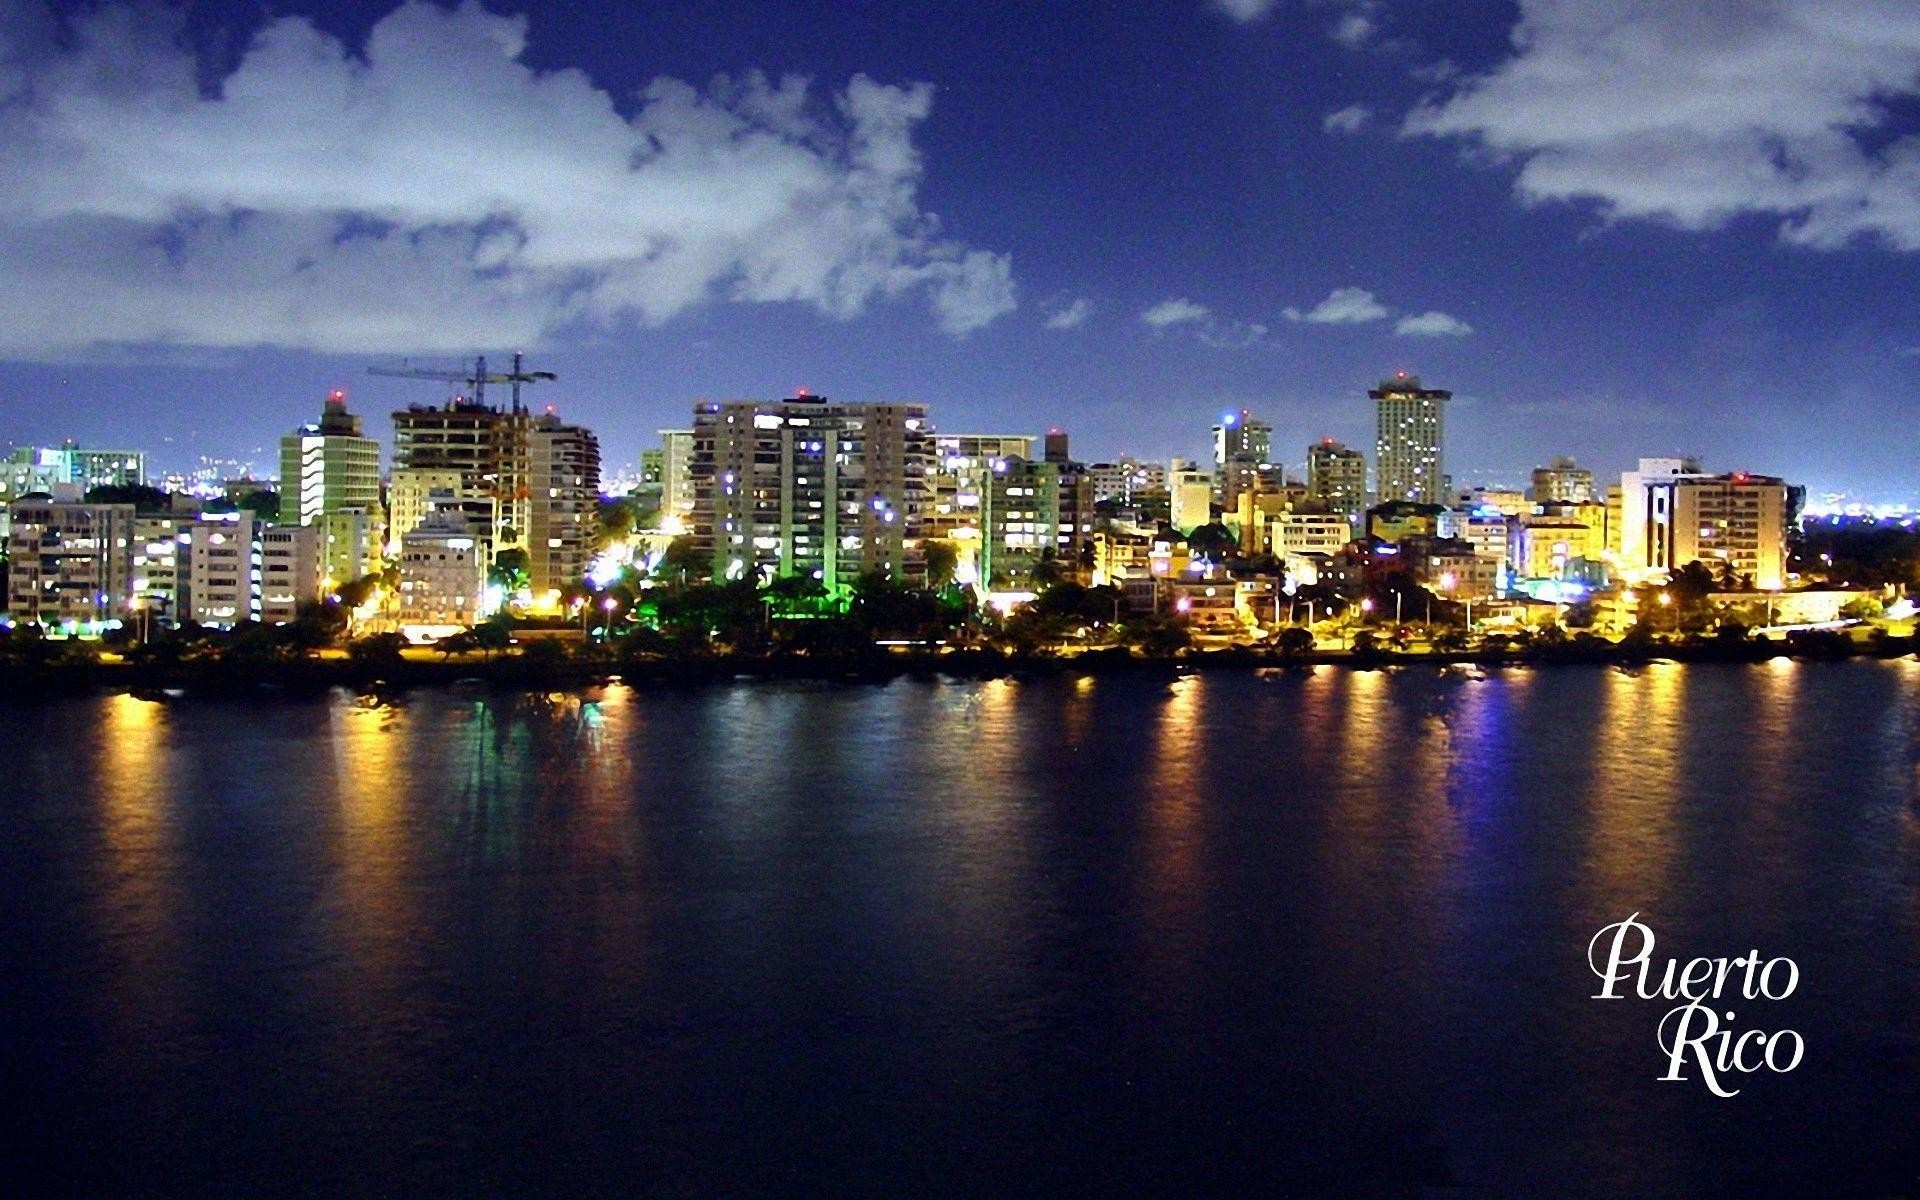 1920x1200 Puerto Rico Wallpaper High Resolution